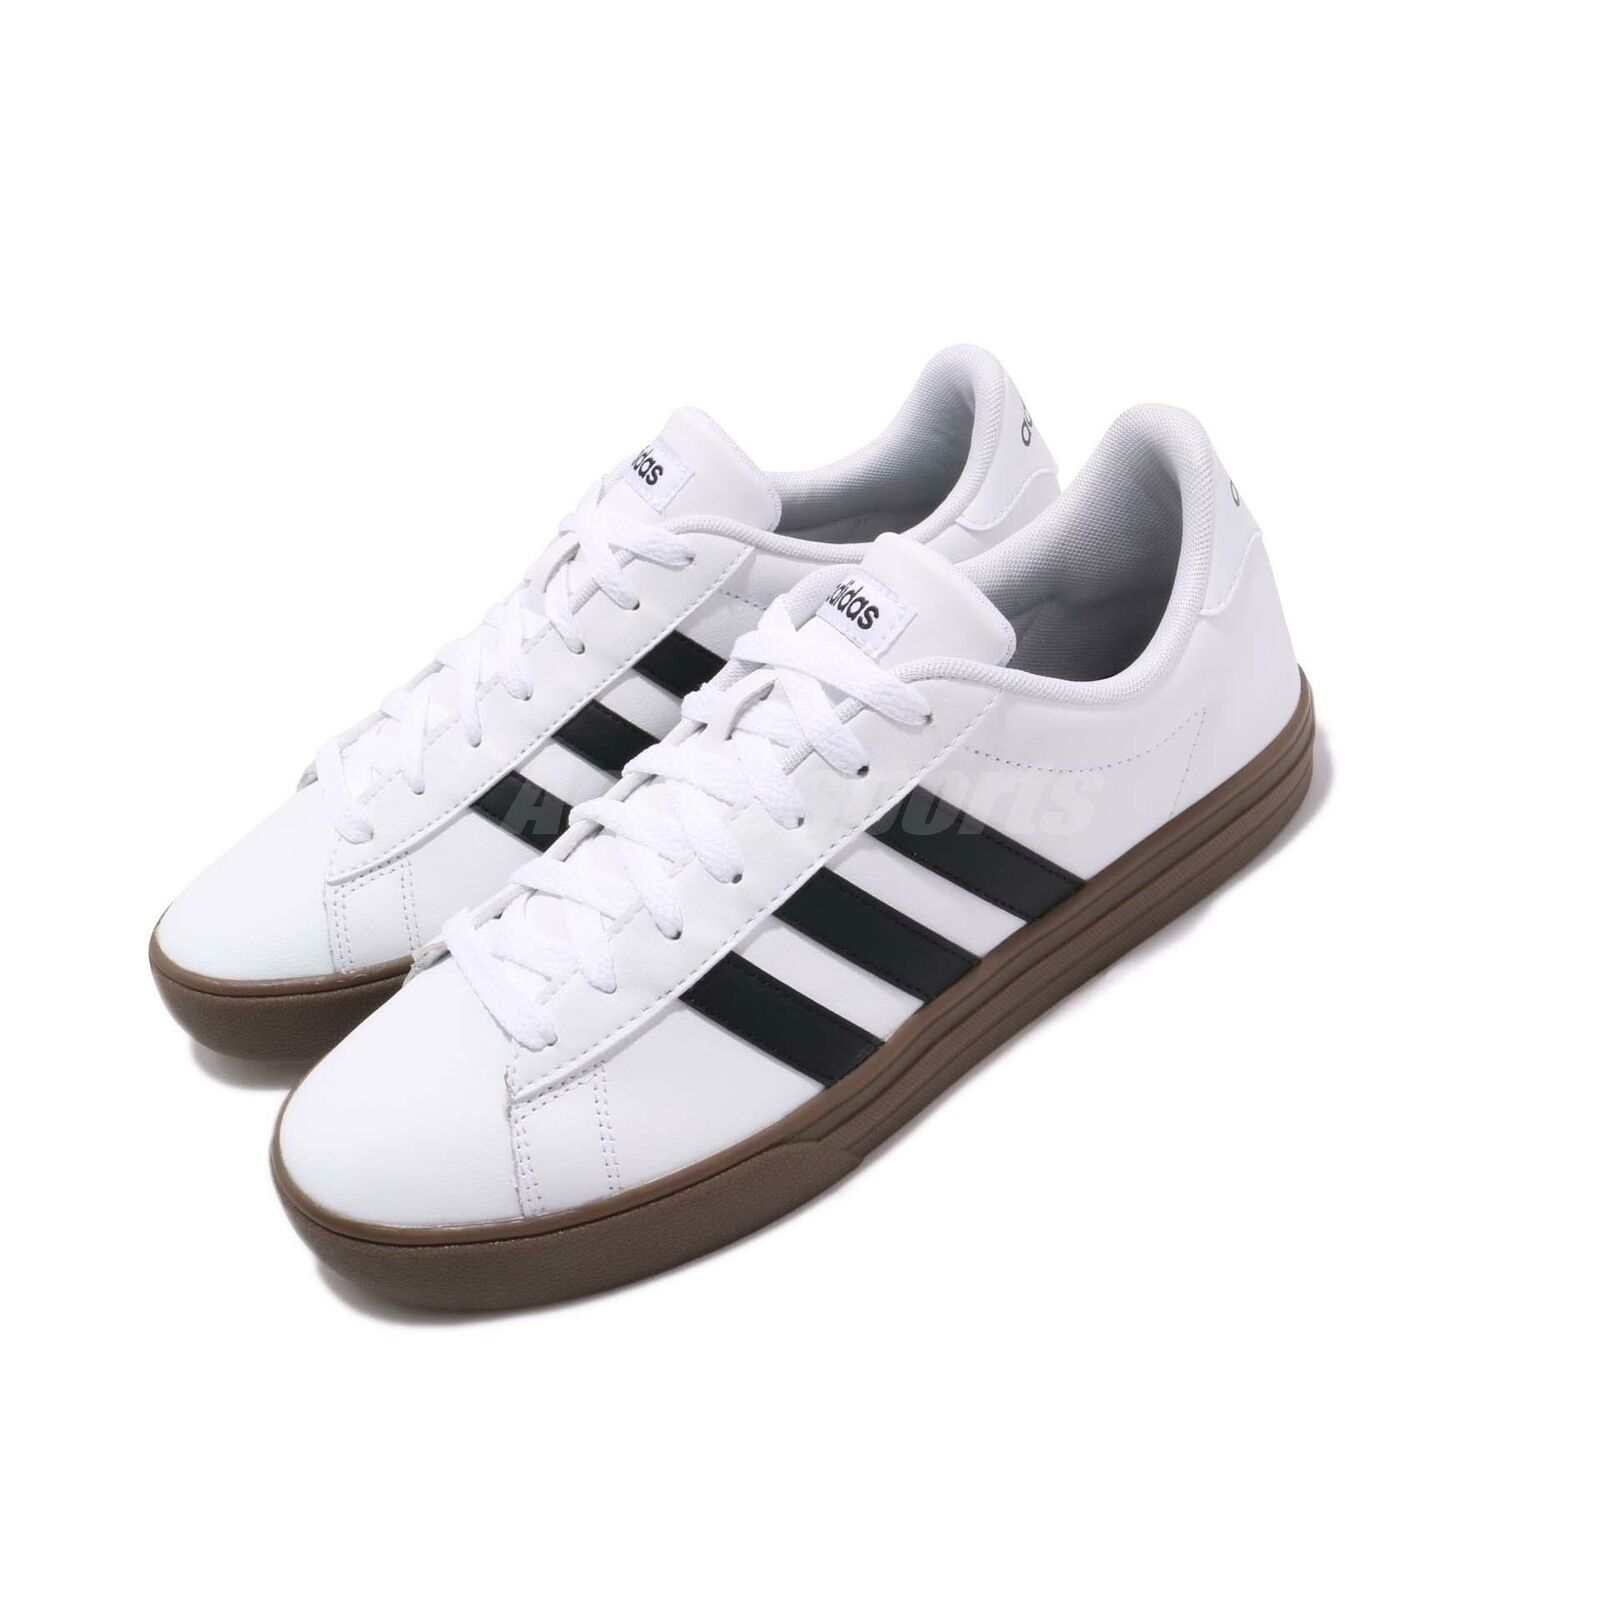 Adidas Daily 2.0 White Black Gum Men Casual Lifestyle shoes Sneakers F34469